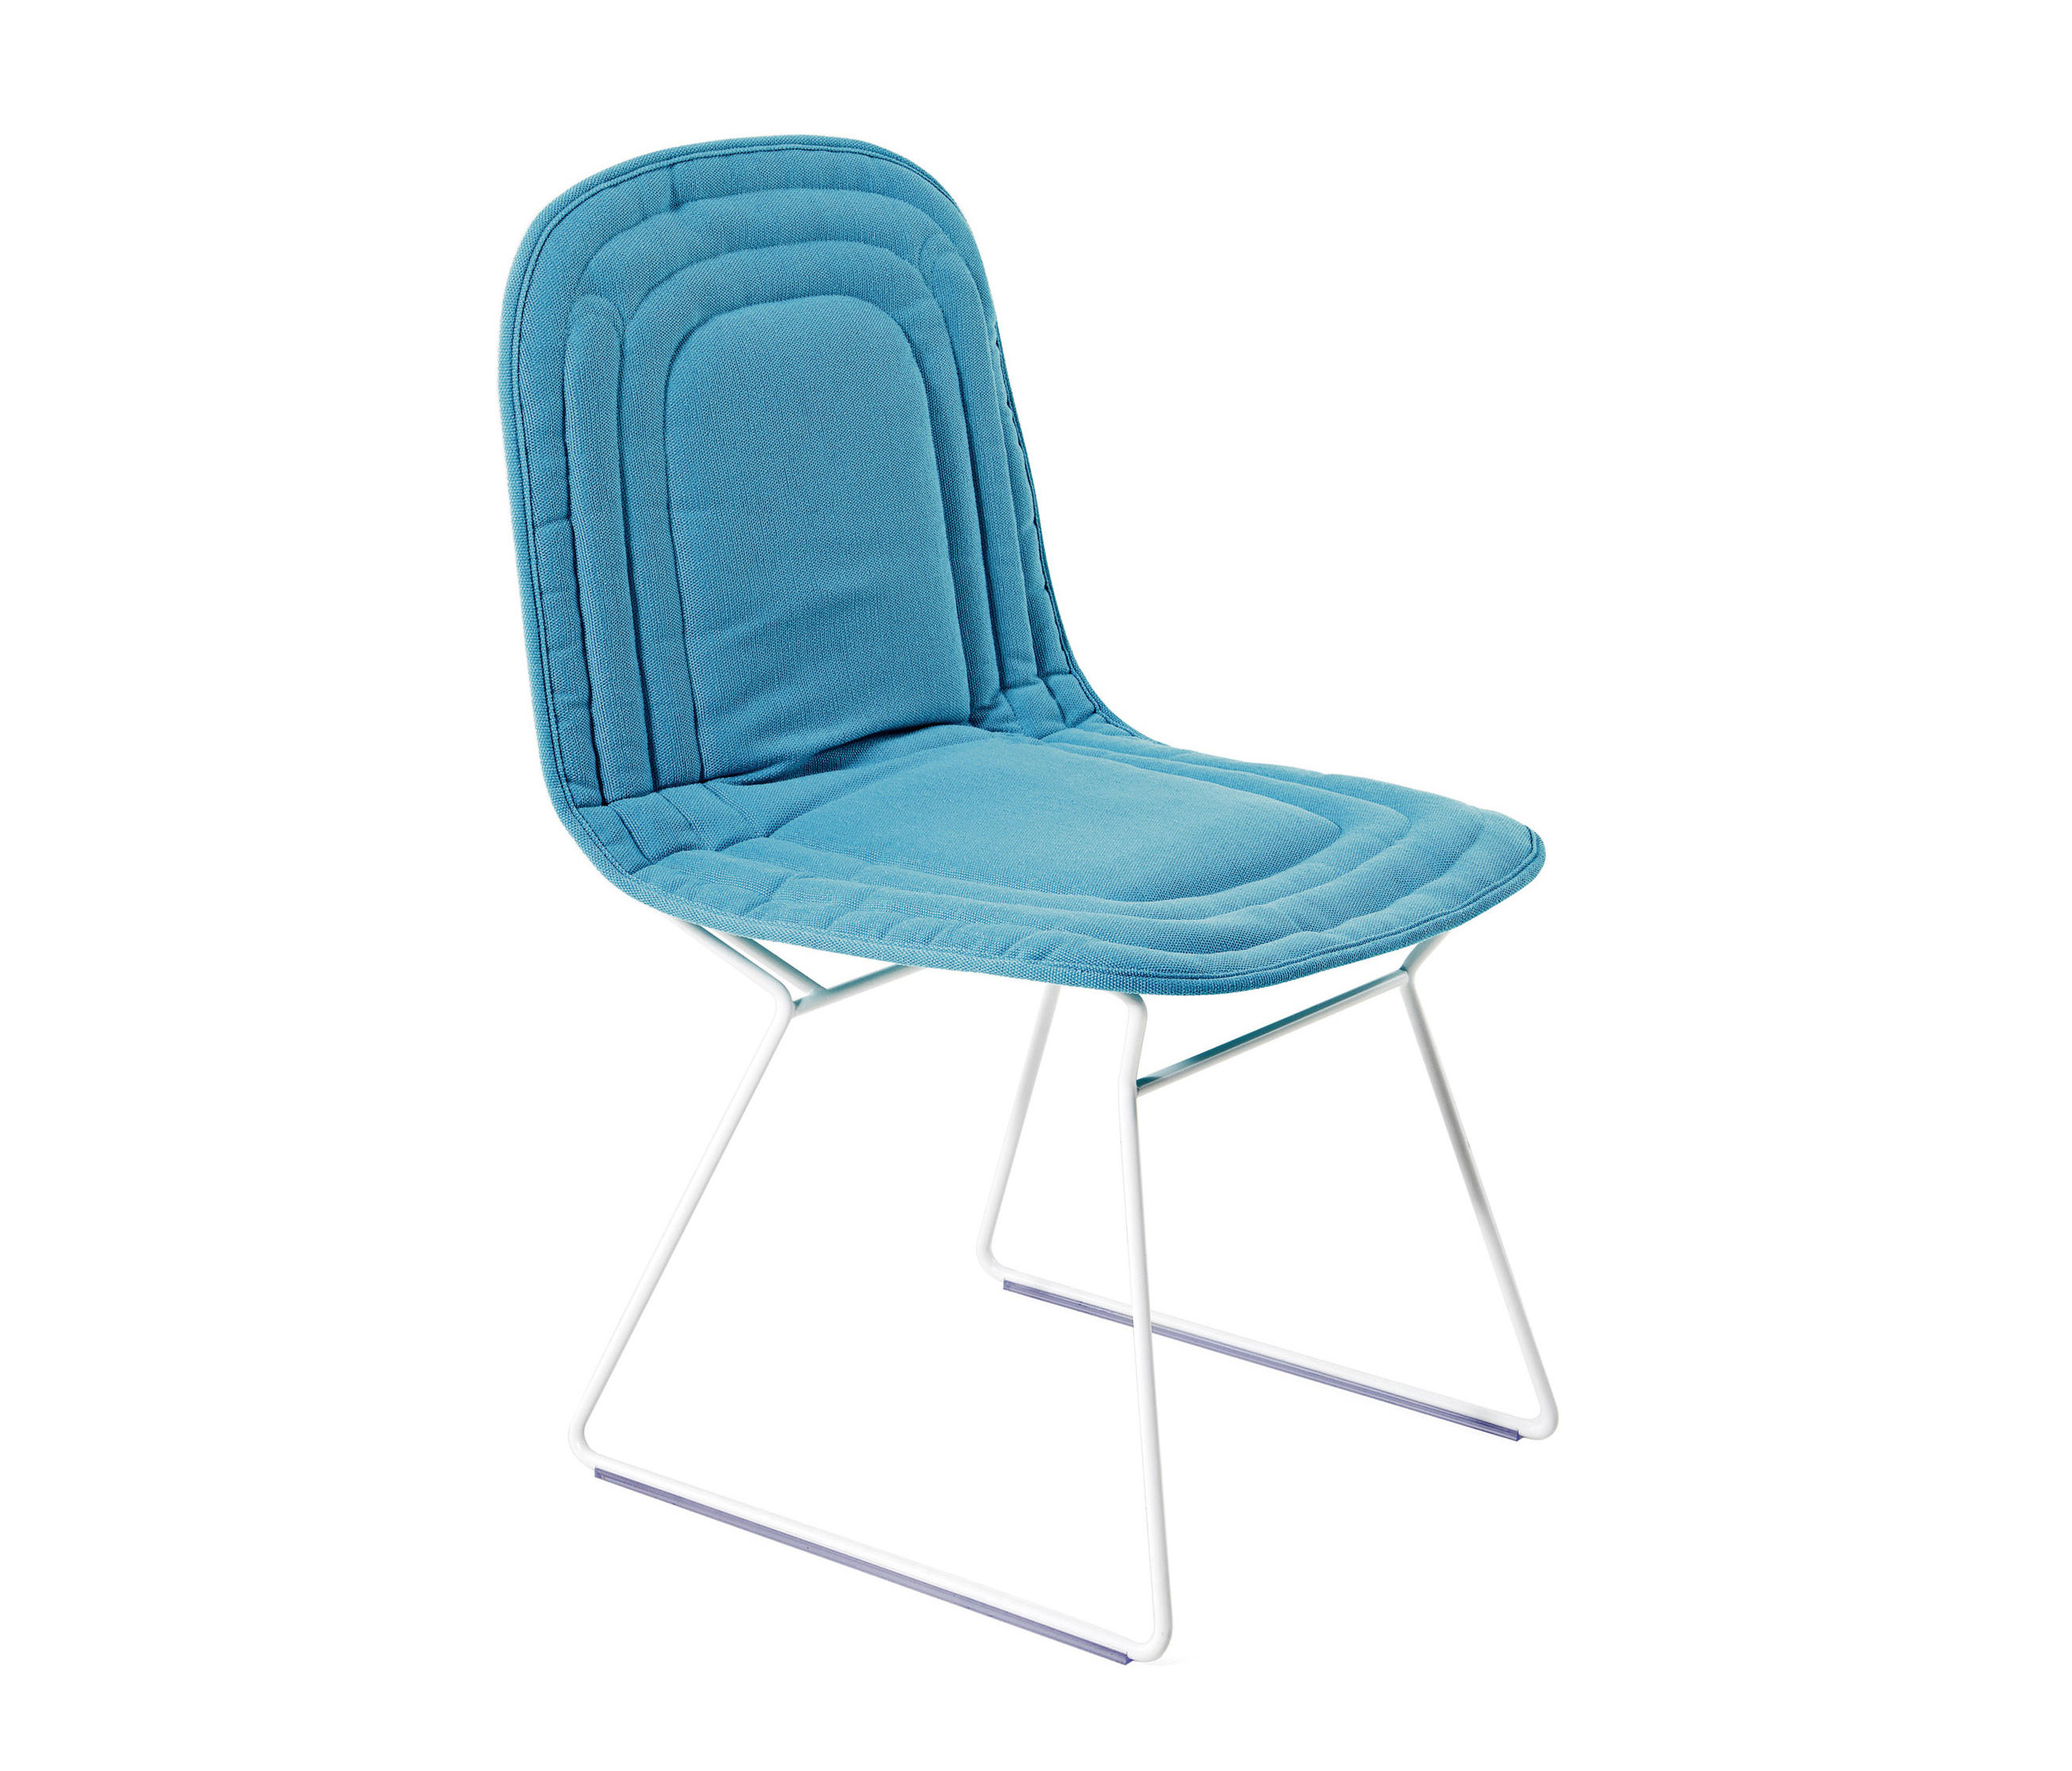 CHAPEAU CHAIR - Chairs from Varaschin | Architonic